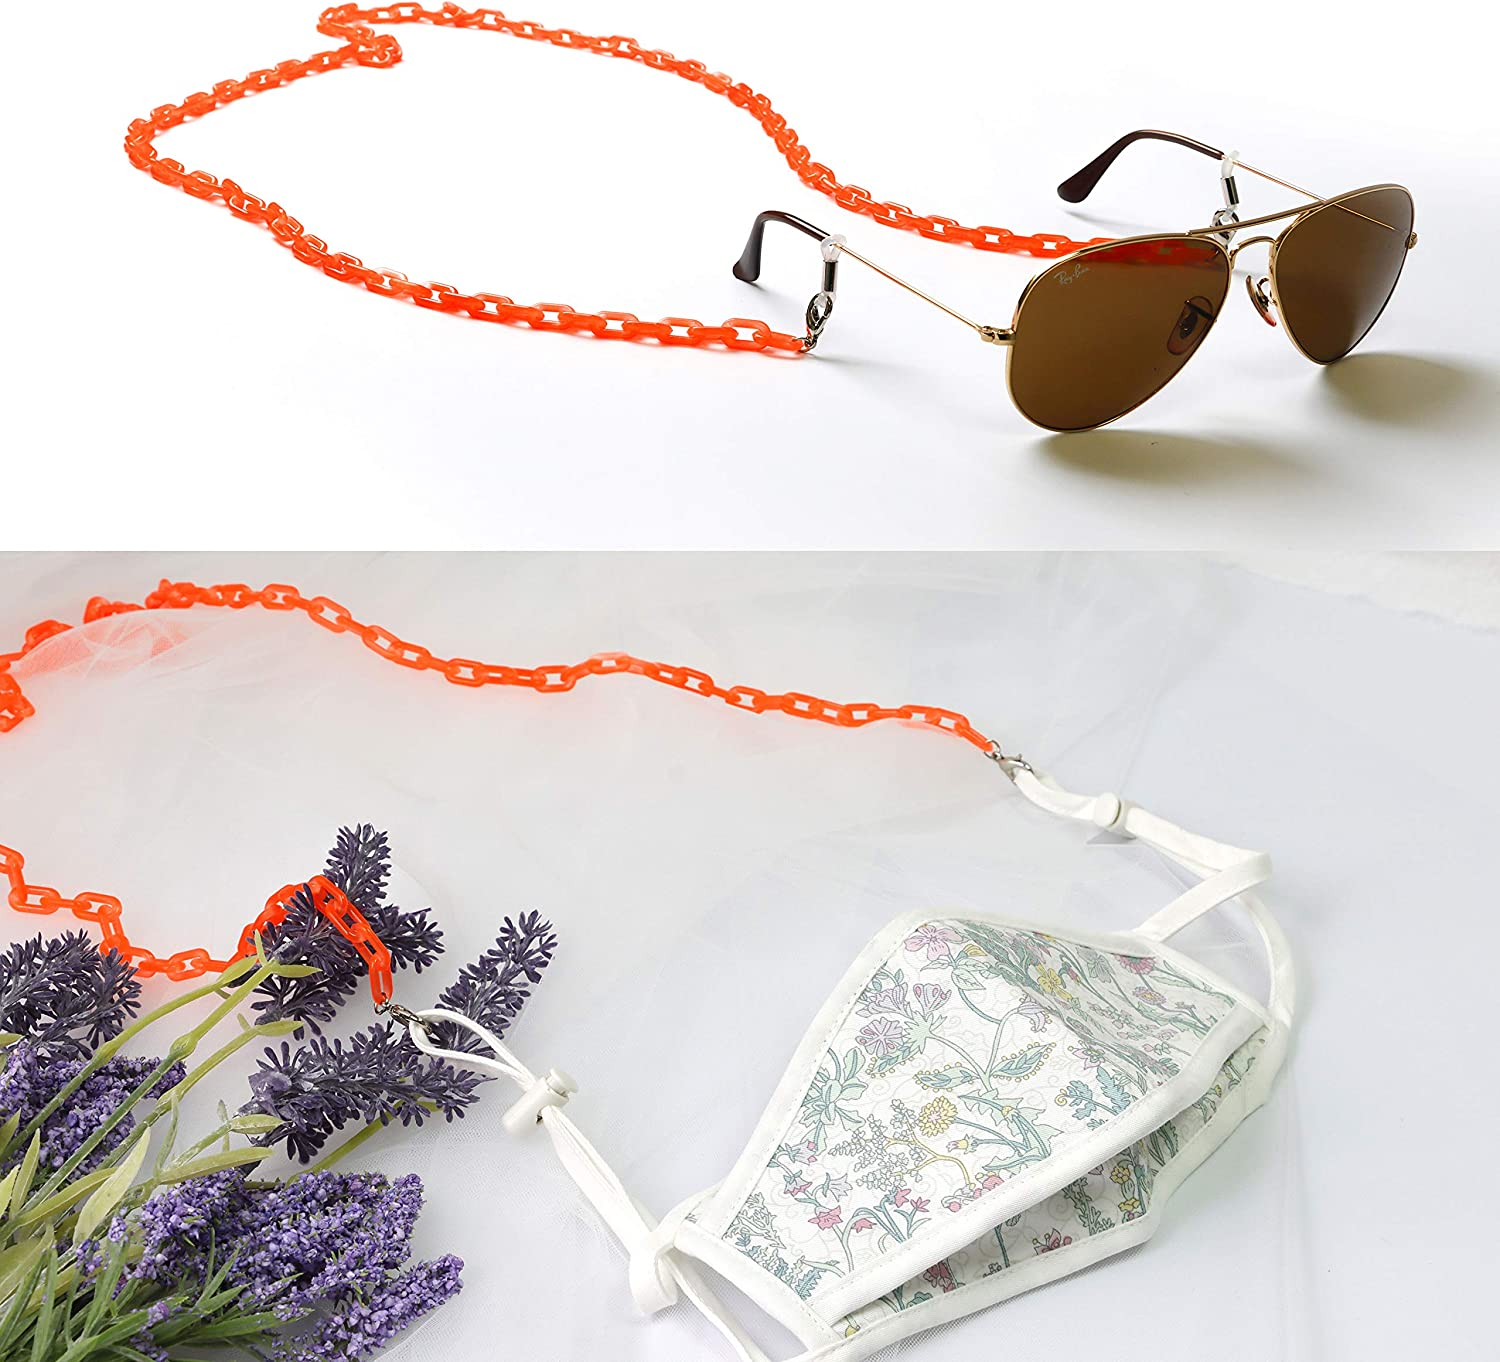 Details about  /Glasses Neck Cord Strap String Lanyard Chain Sunglasses Glasses Reading G5N1